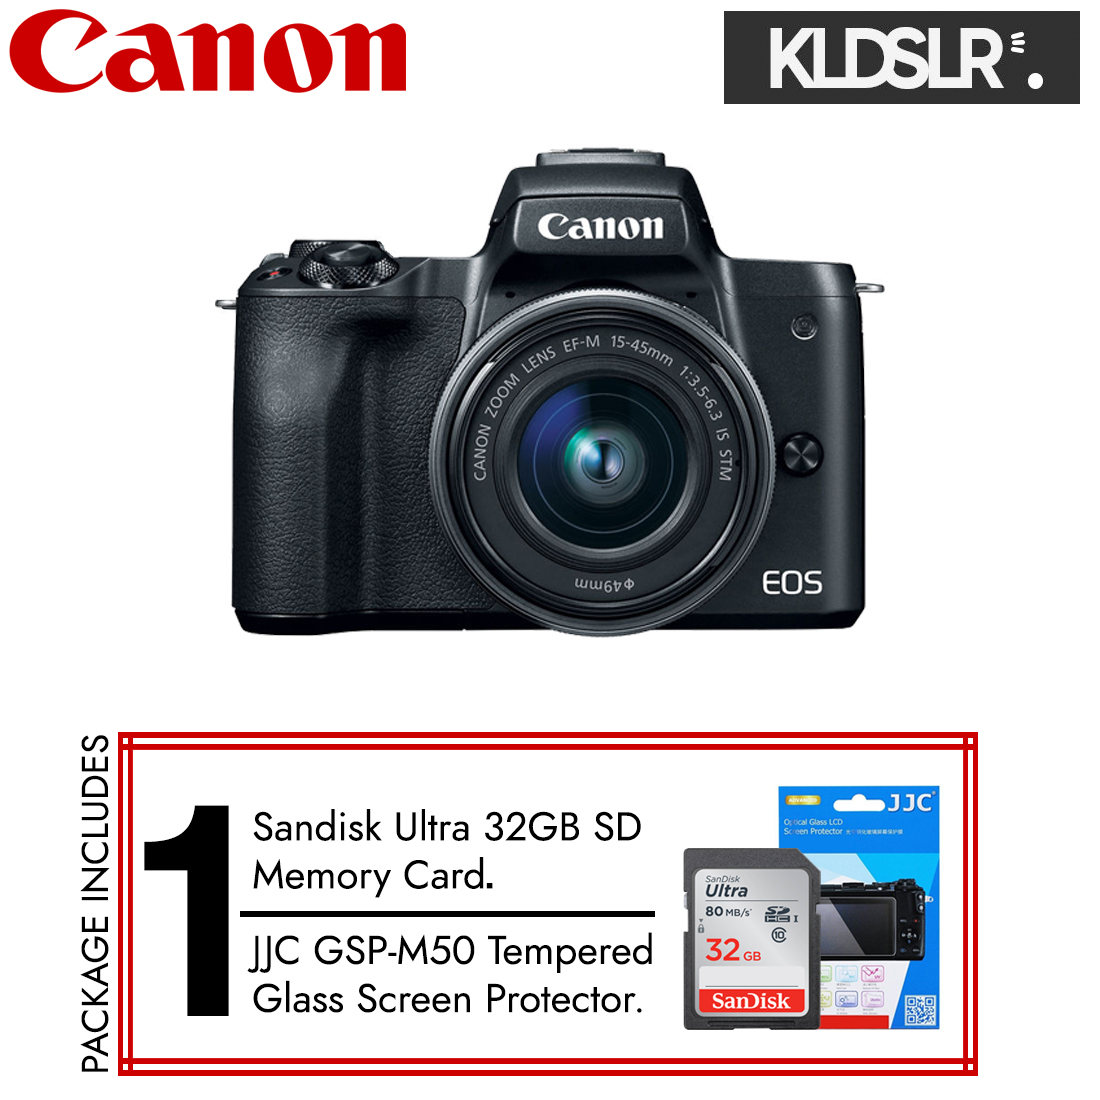 (END YEAR SALE) Canon EOS M50 with 15-45mm Lens (Black) (New 3 Months Warranty) (Free Sandisk Ultra 32GB SD Card + JJC Screen Protector)